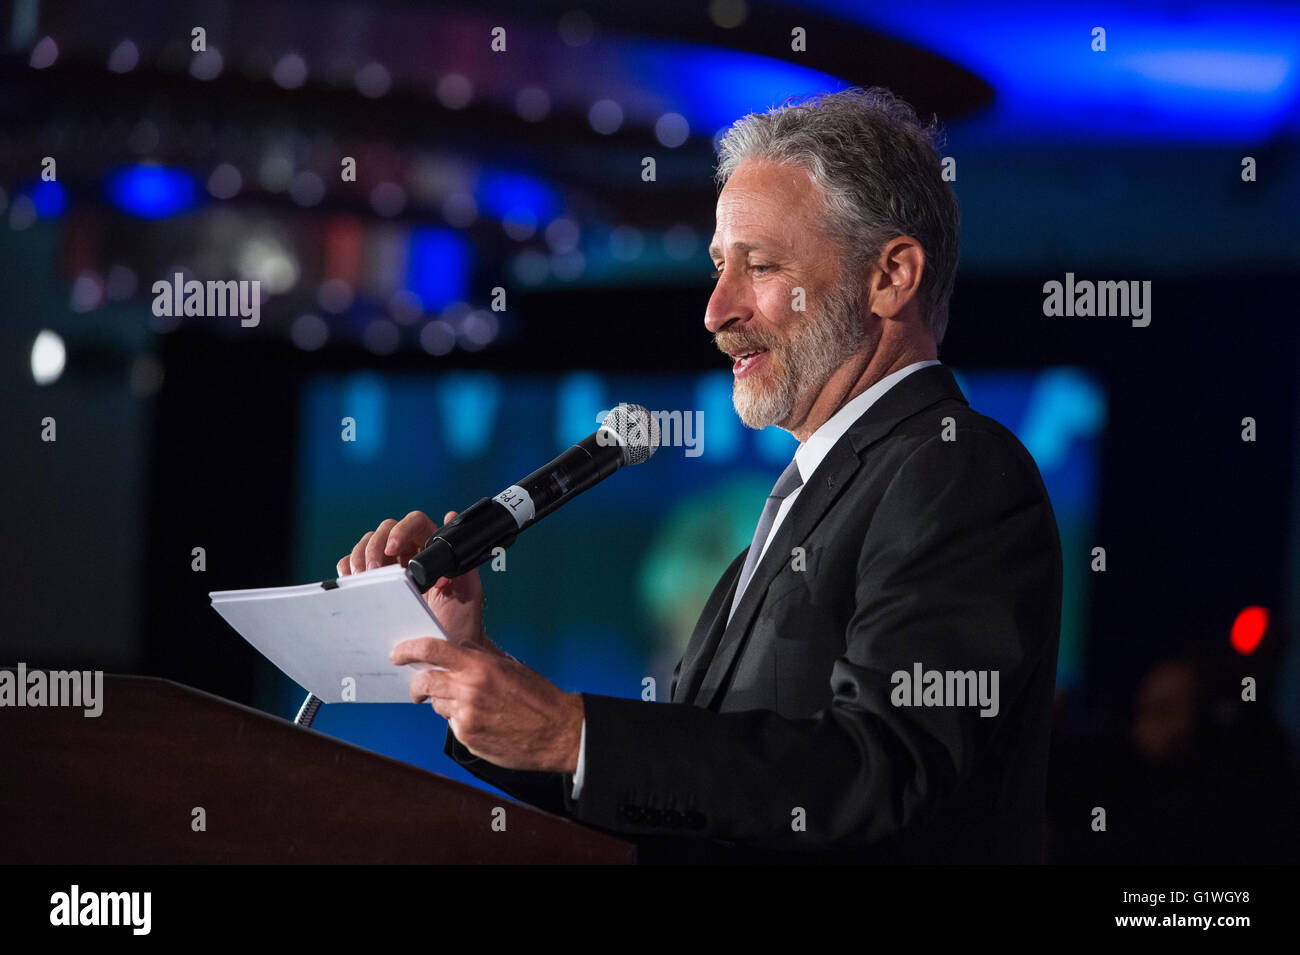 Comedian Jon Stewart gives a monologue during the 75th anniversary celebration of the USO April 19, 2016 in Washington, - Stock Image